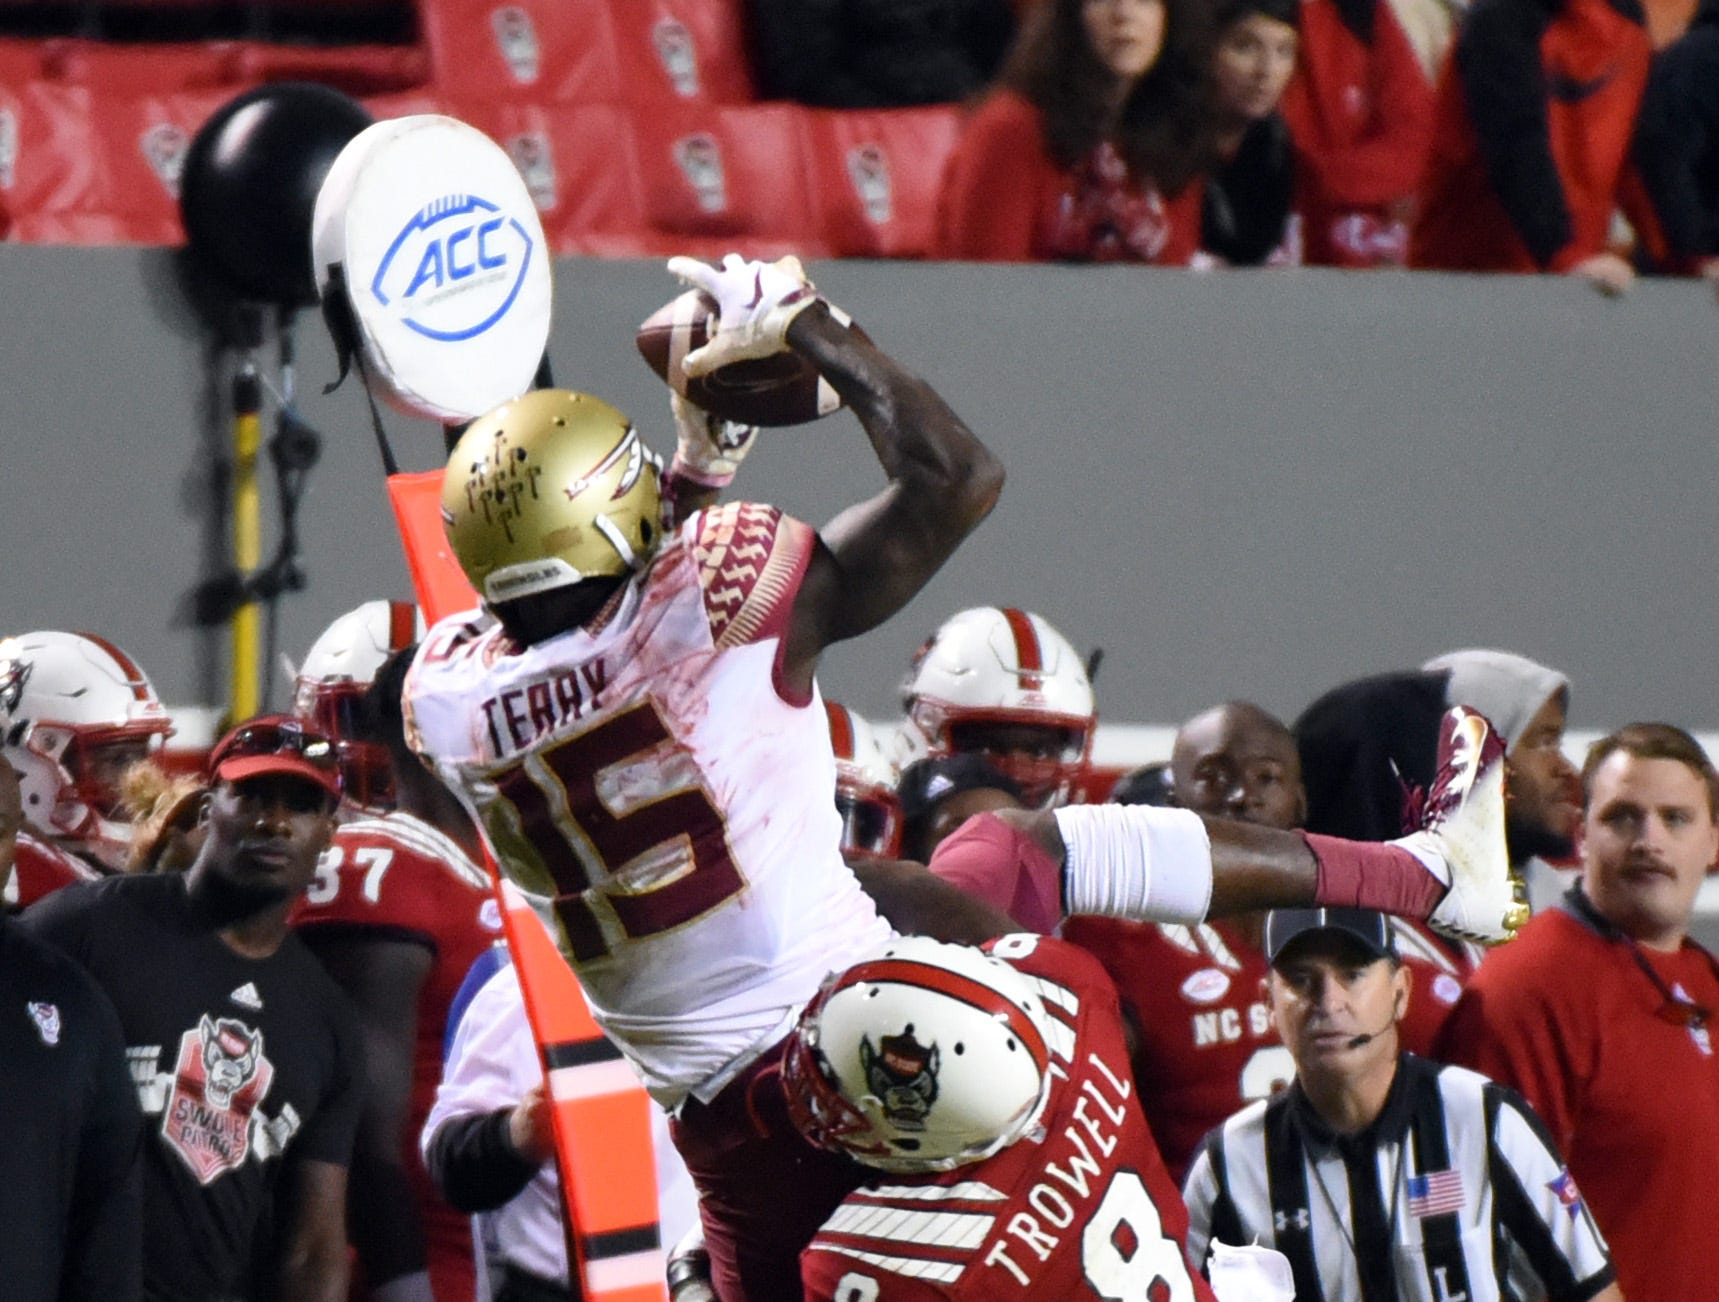 Nov 3, 2018; Raleigh, NC, USA; Florida State Seminoles wide receiver Tamorrion Terry (15) catches a ball over North Carolina State Wolfpack defensive back Maurice Trowell (8) during the second half at Carter-Finley Stadium.  The Wolfpack won 47-28.  Mandatory Credit: Rob Kinnan-USA TODAY Sports